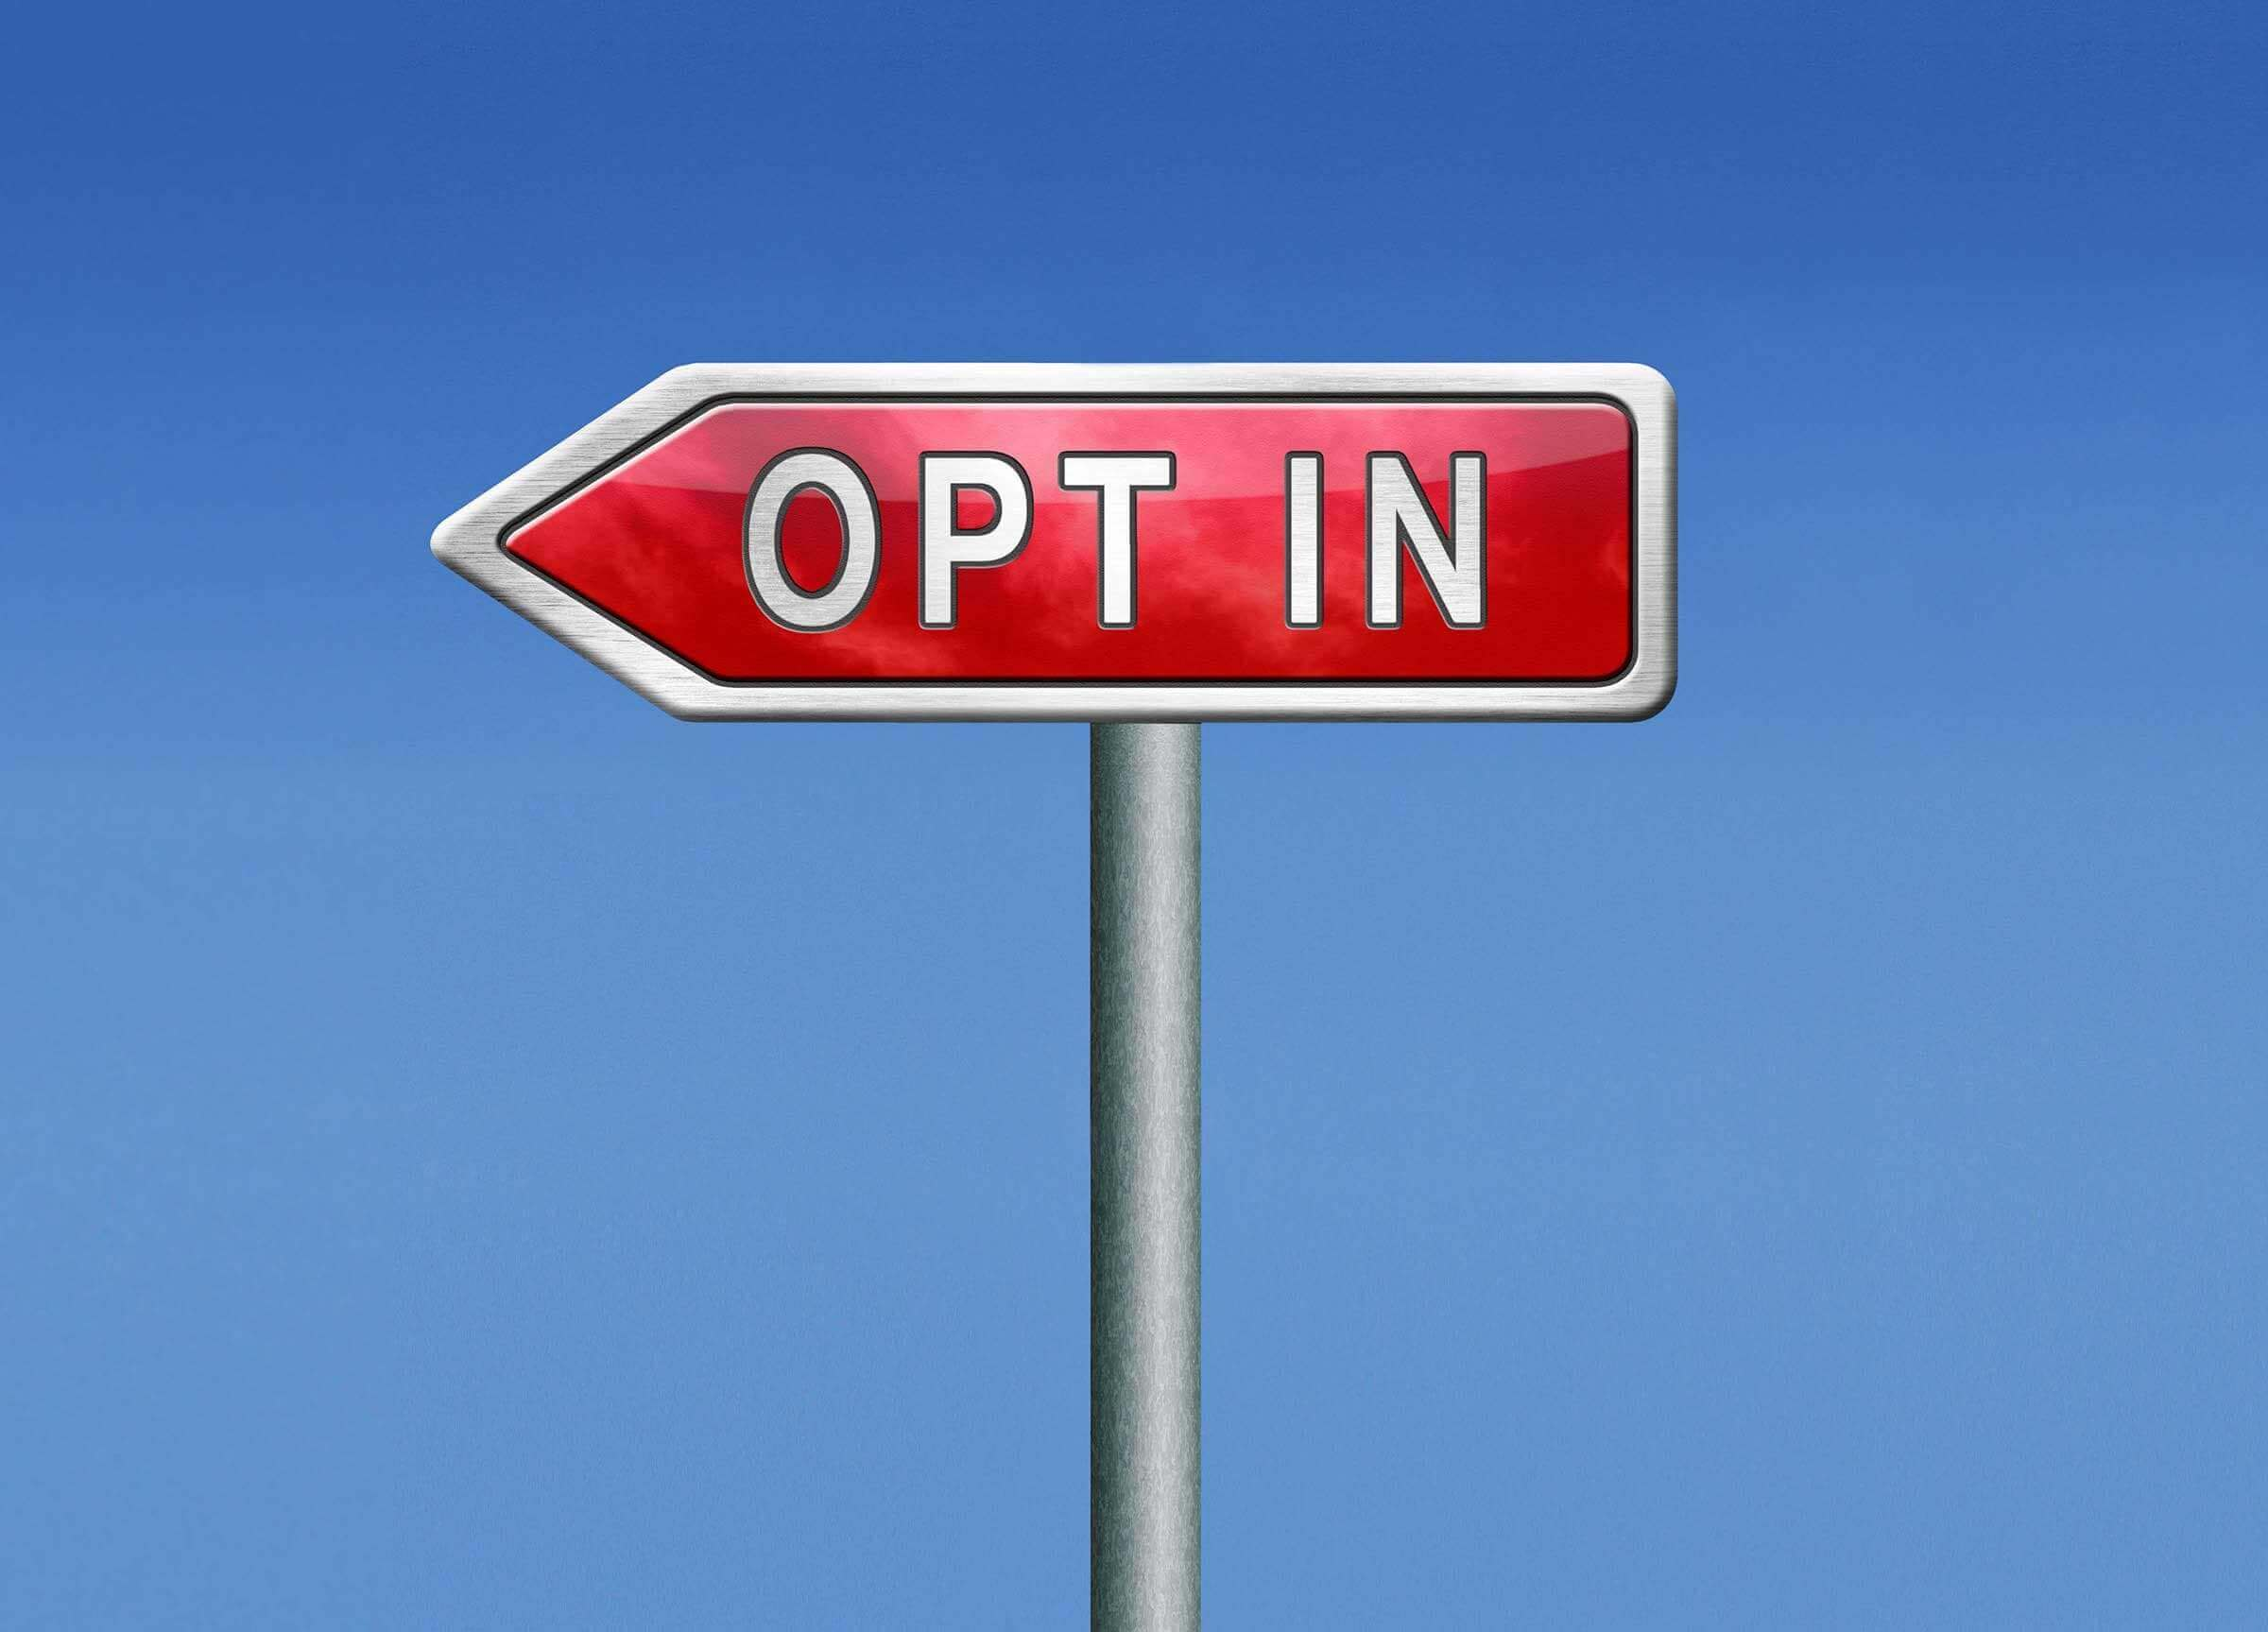 opt in or opting out yes or no